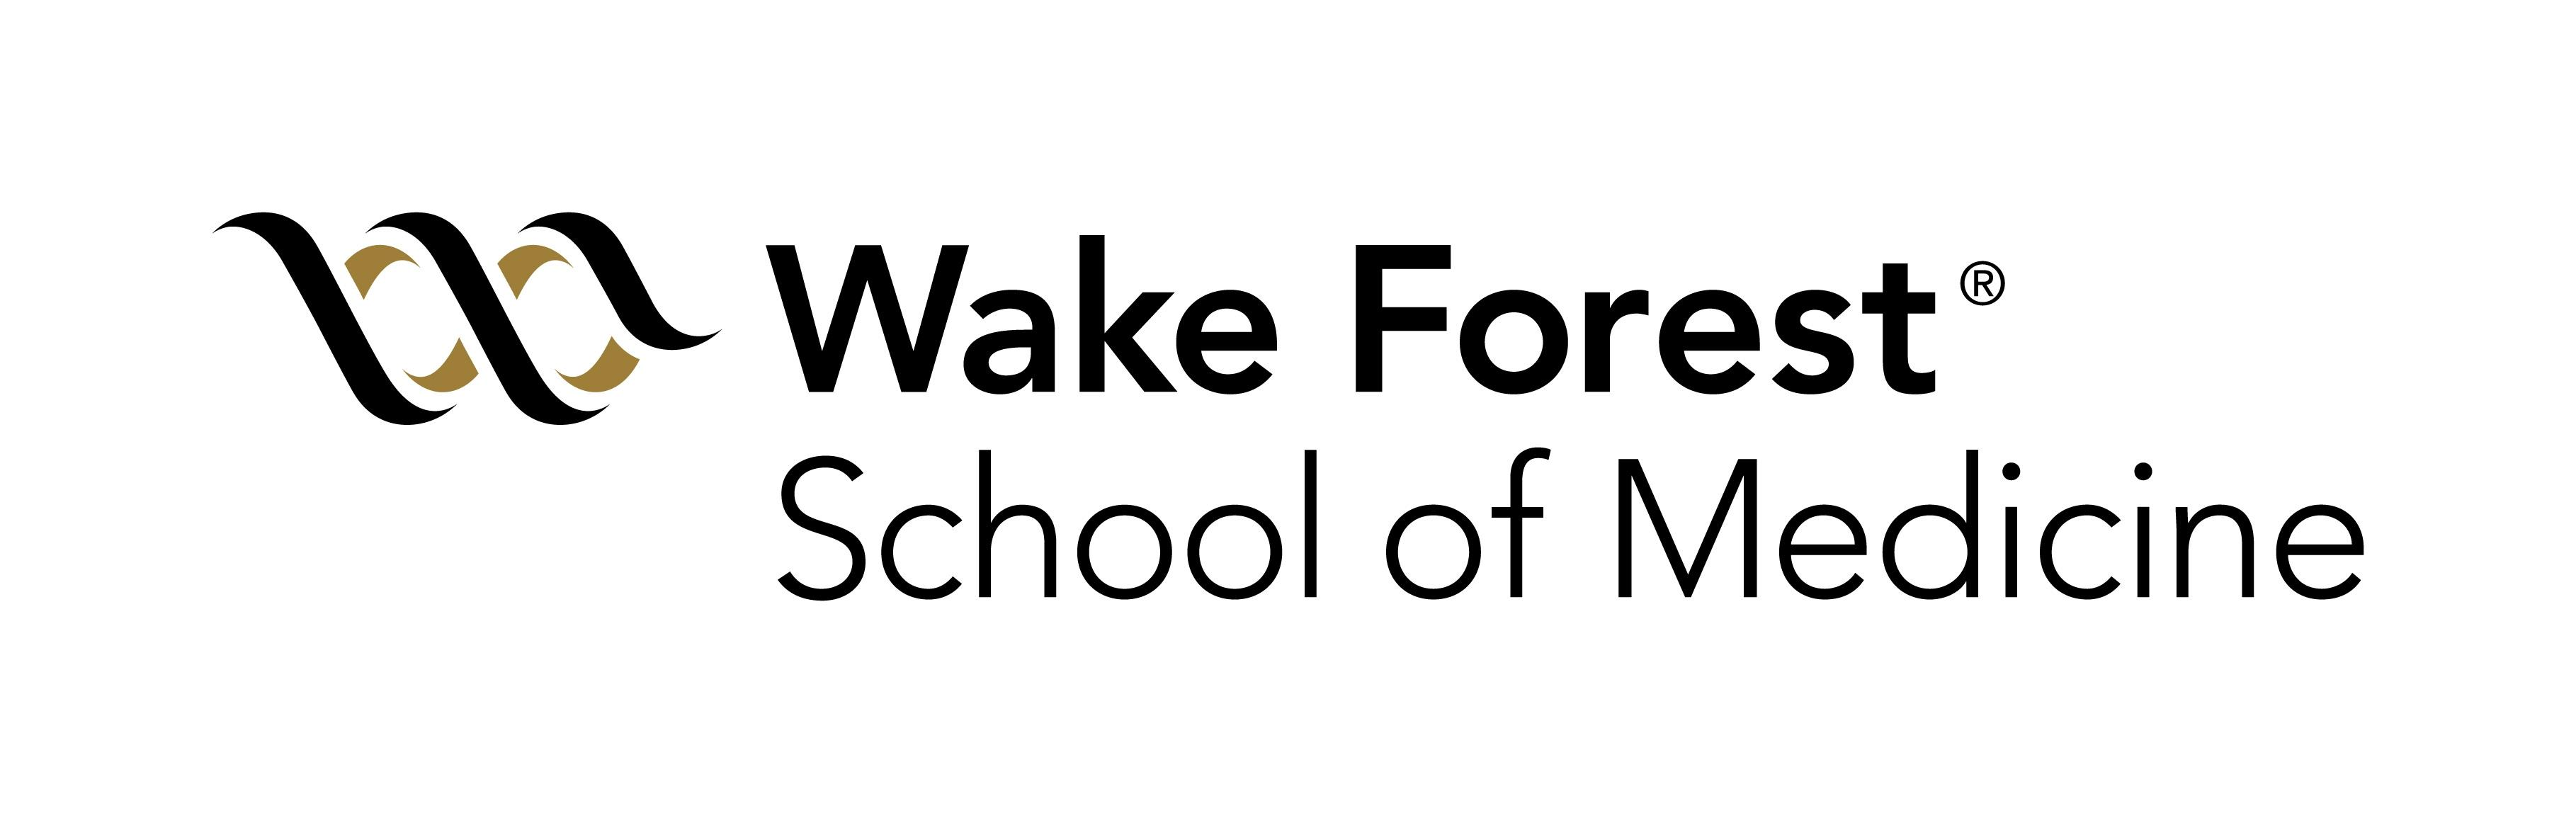 Transplant Nephrology Faculty Position in North Carolina - Wake Forest School of Medicine